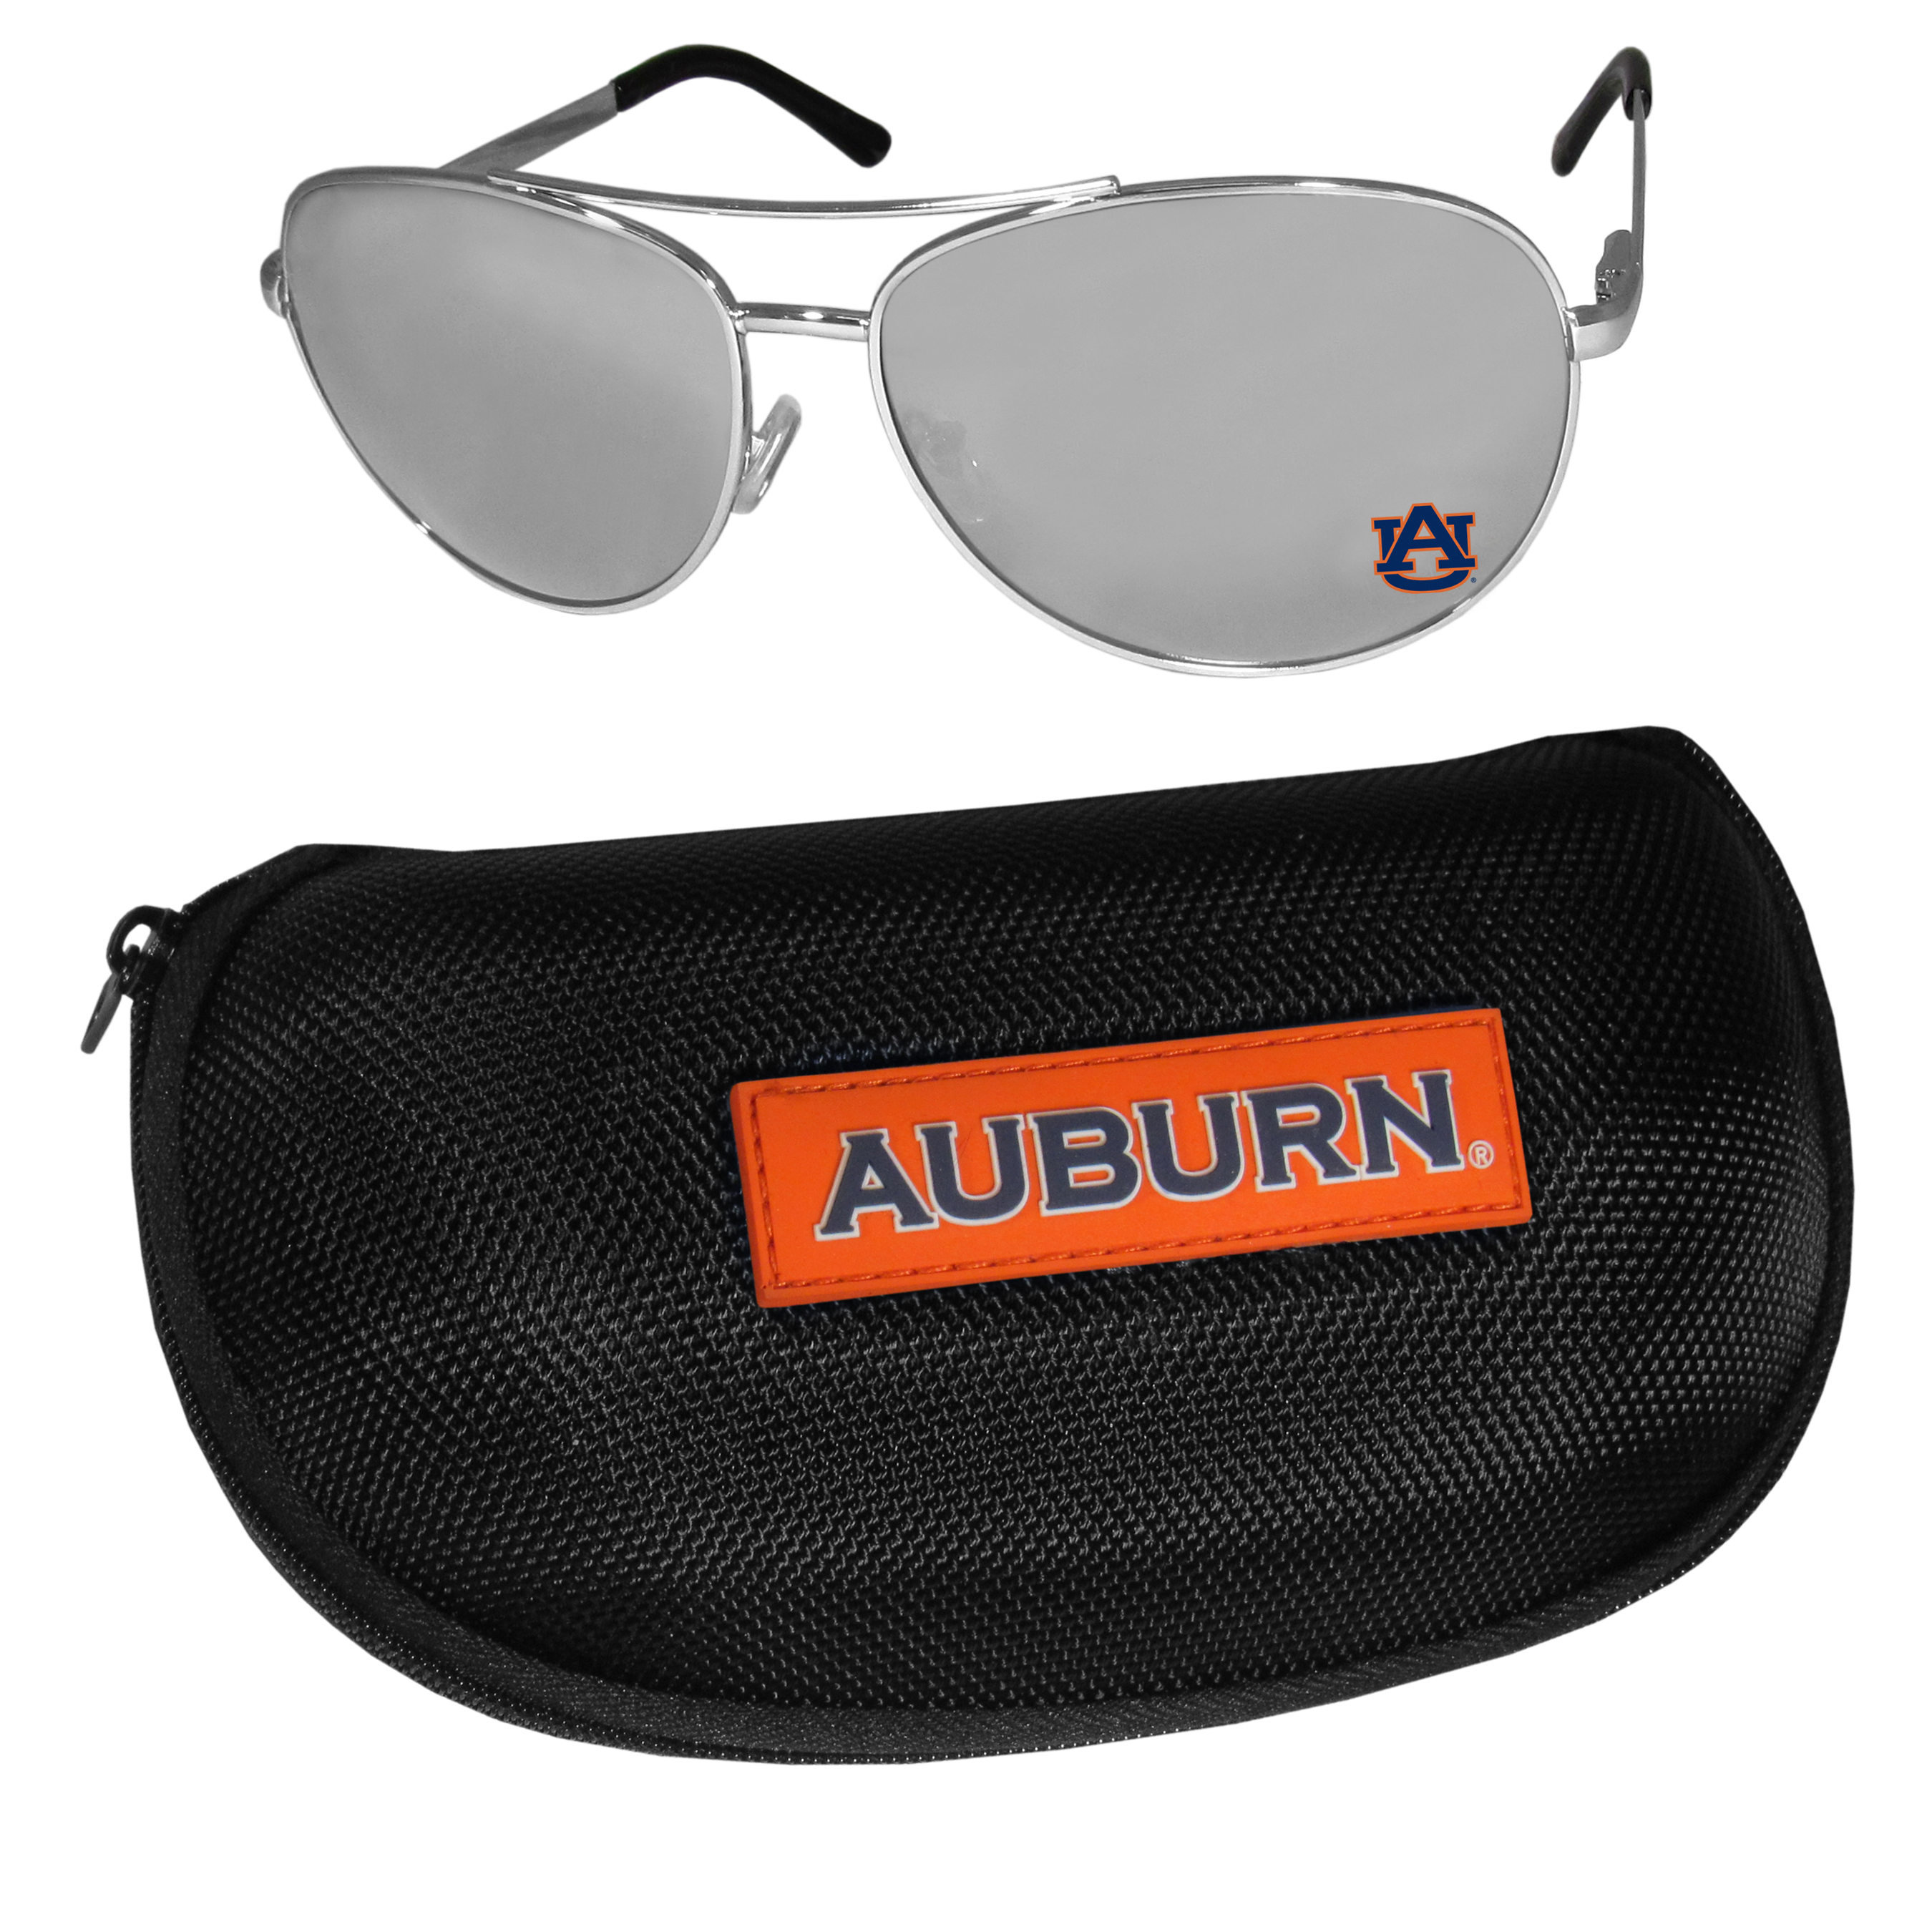 Auburn Tigers Aviator Sunglasses and Zippered Carrying Case - Aviator sunglasses are truly an iconic retro fashion statement that never goes out-of-style. Our Auburn Tigers  aviator sunglasses pair this classic look with your love of the game. The iridium coated lenses reduce glare while driving, boating, golfing and their 100% UVA/UVB rating provides you with the maximum UV protection for all your outdoor activities. A millennial favorite, these affordable designer frames are the perfect eyewear accessory for a sports fan that is looking for high-quality at an affordable price. The durable, flex hinged frames are tough enough for hiking and camping or if you prefer sun bathing by the pool or on the beach these shades will really stand the test of time. The sunglasses come with a hard shell zippered case which has a large team logo on the lid that will make even the most die-hard fan proud!